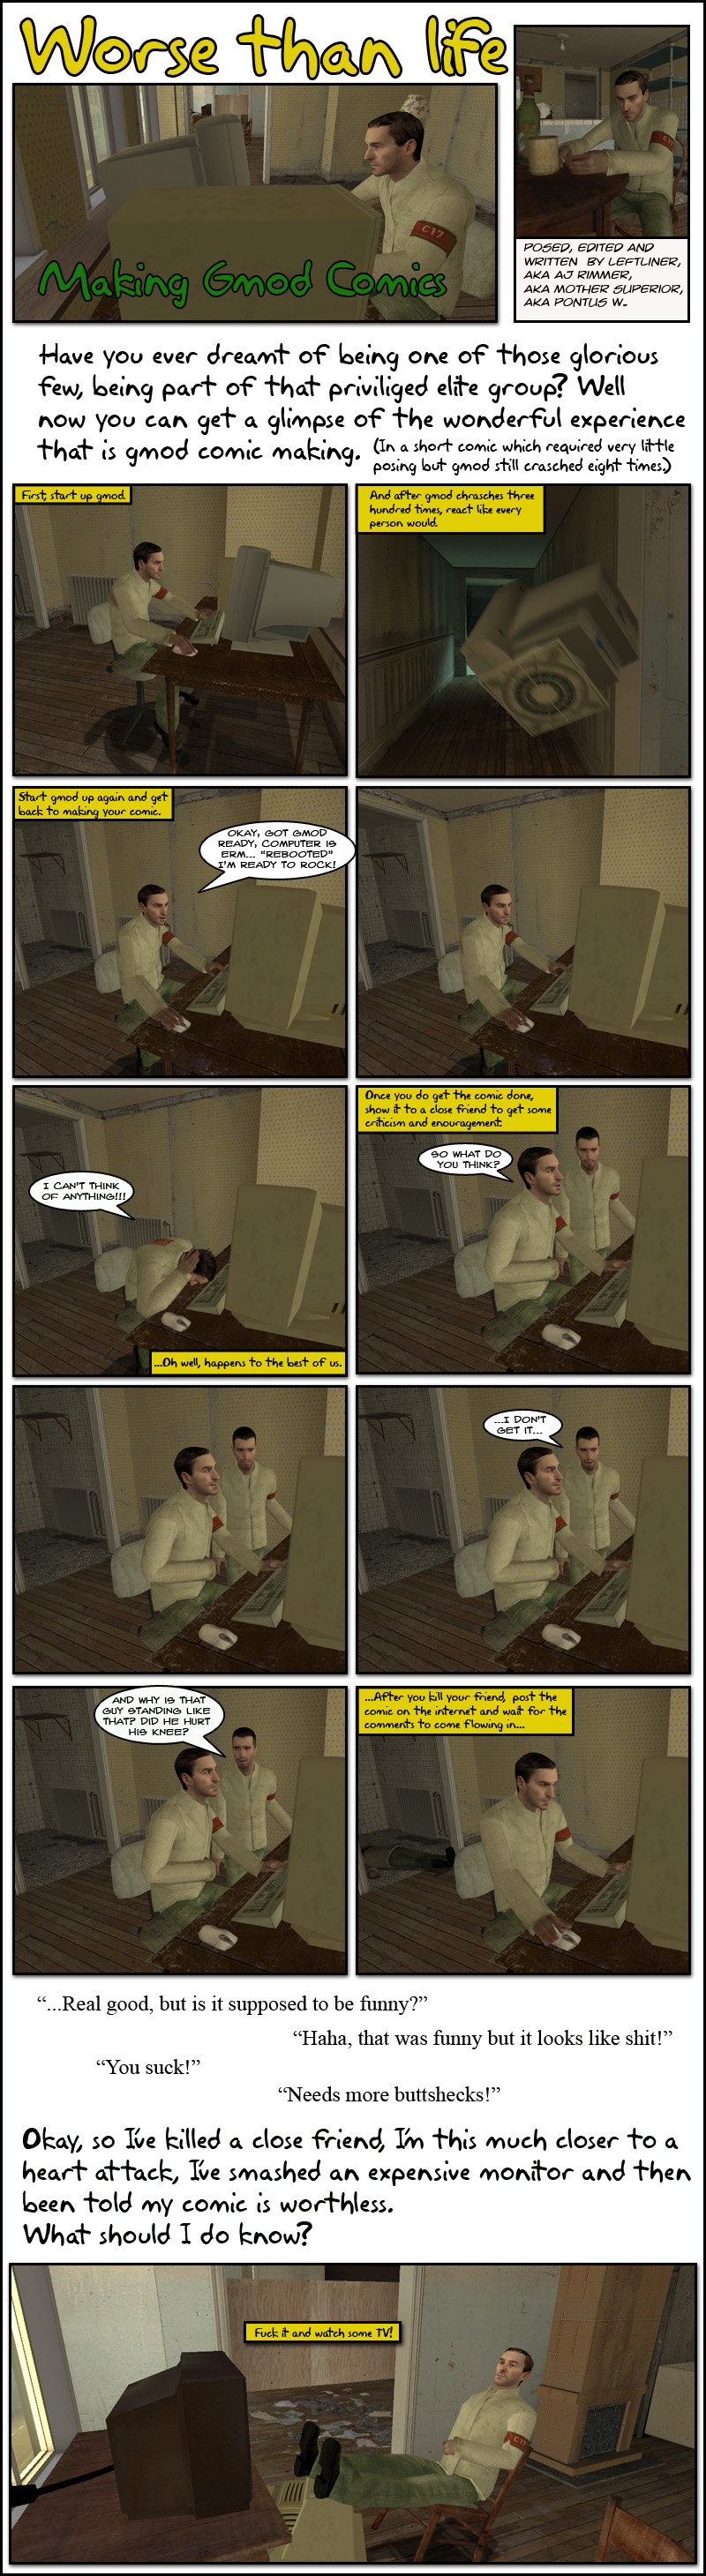 Worse than Life: Making GMod Comics